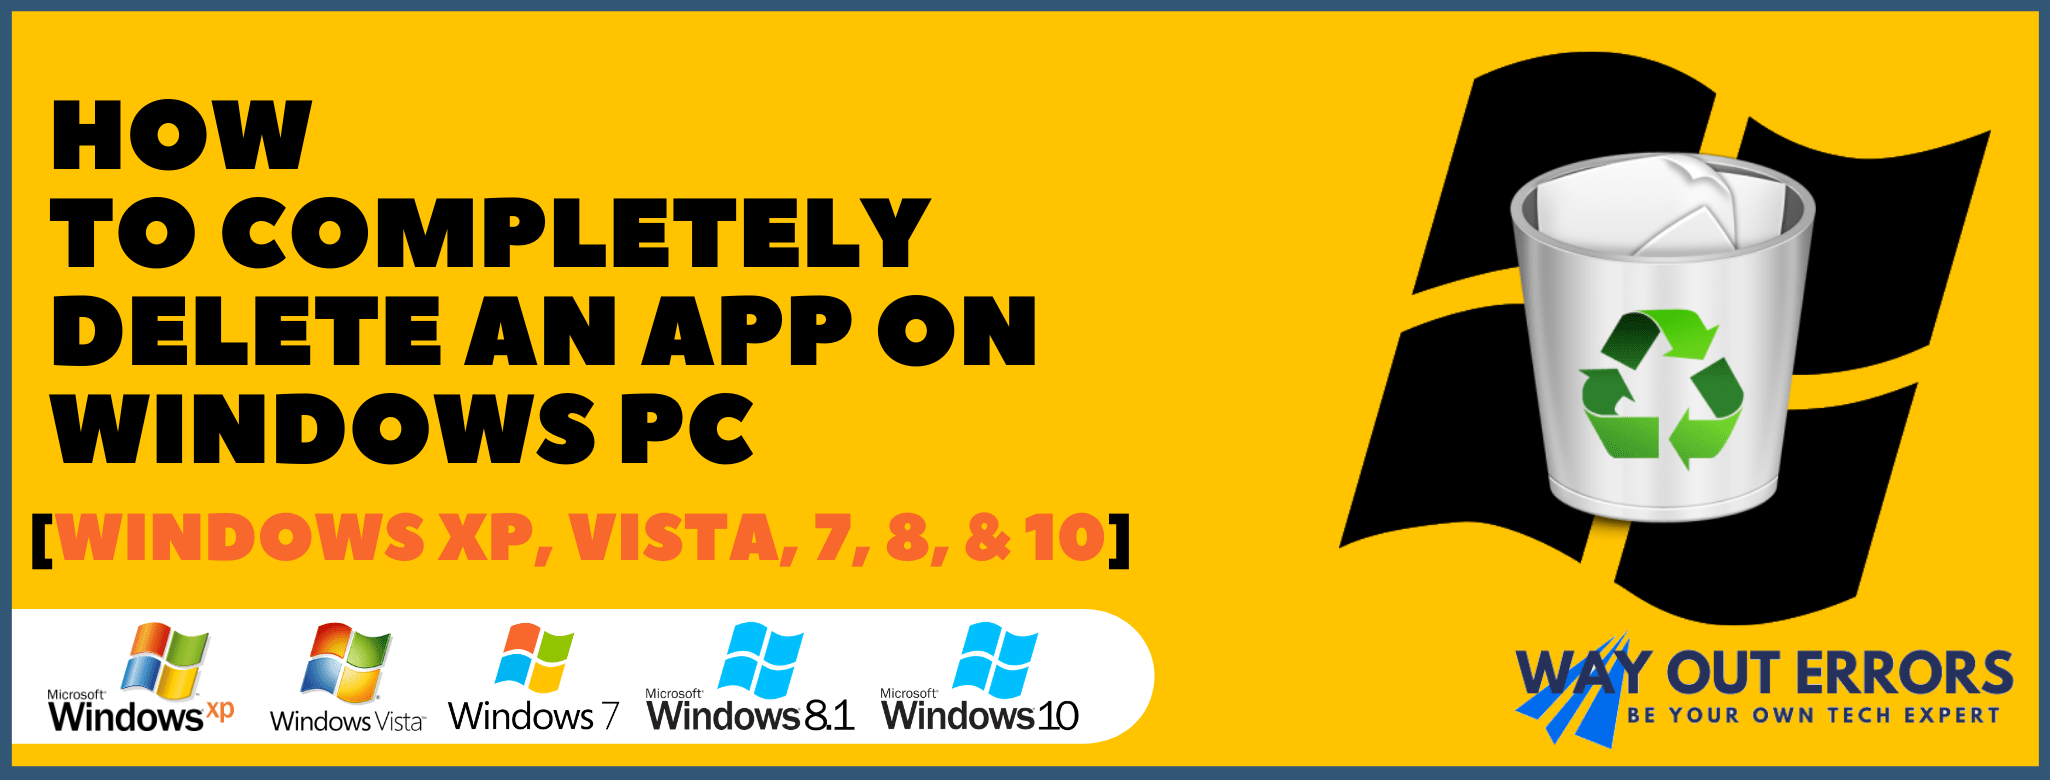 how to completely delete an app on PC